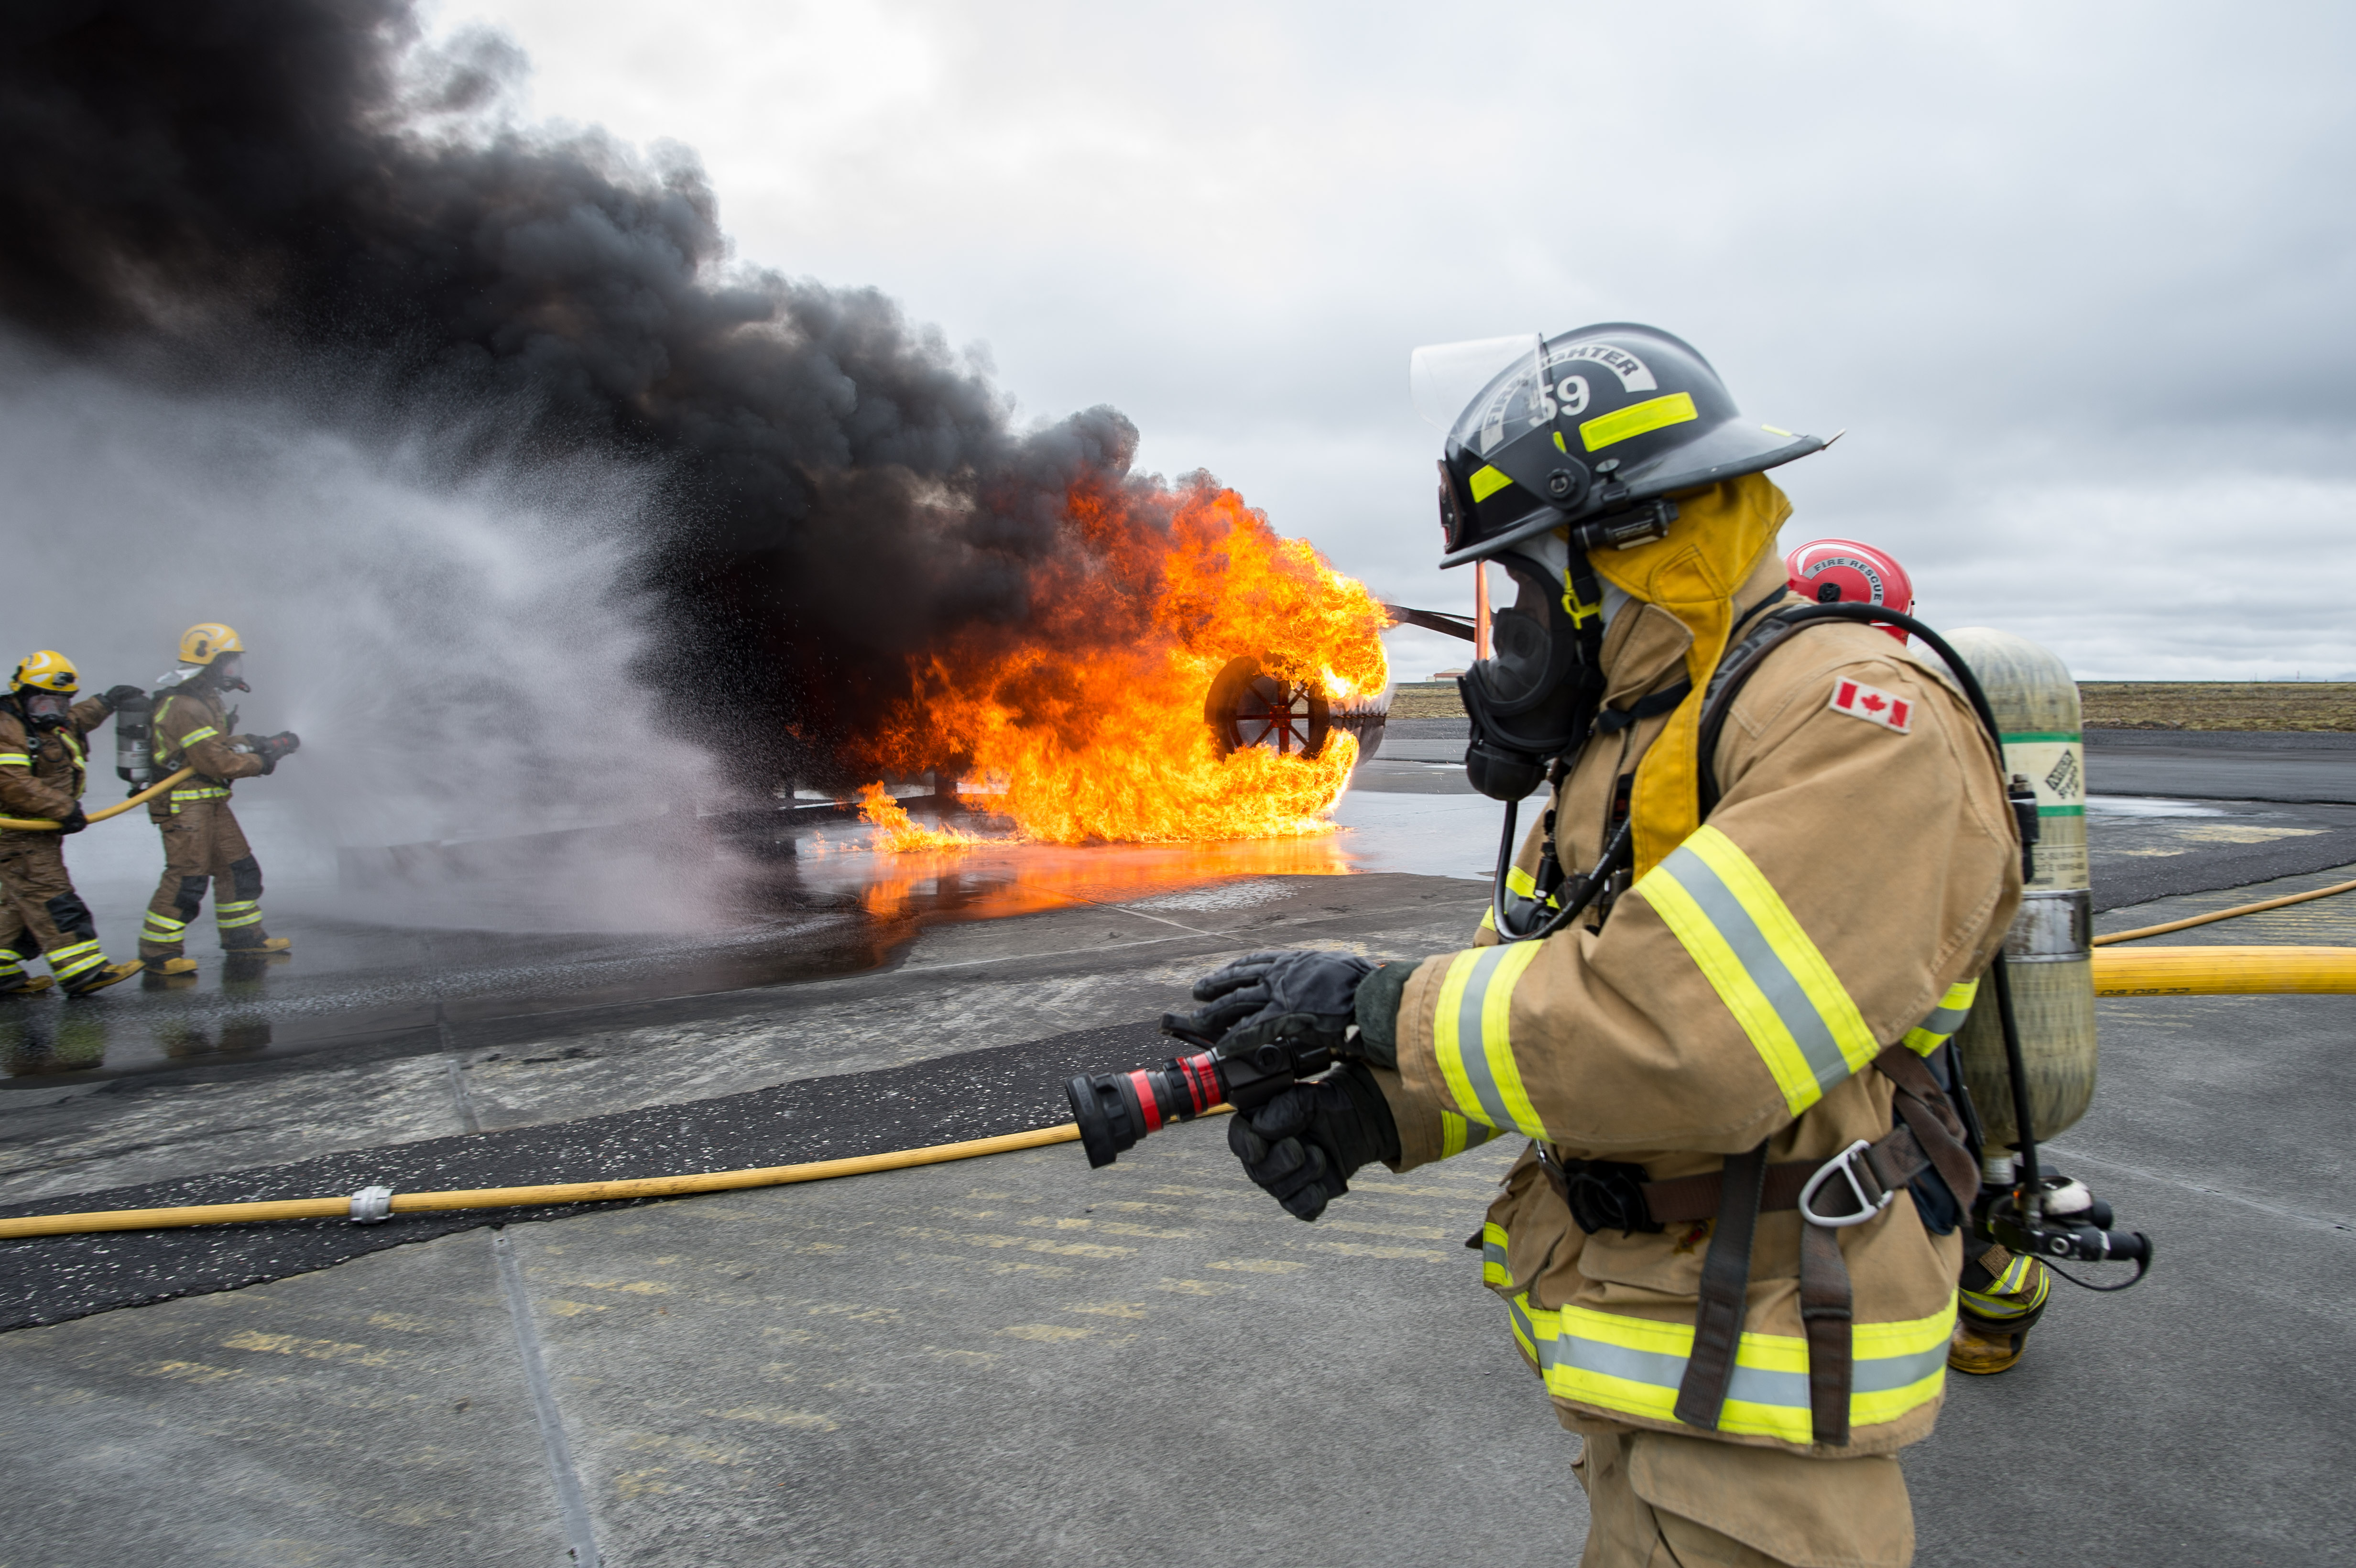 On a runway, a man in the foreground wears a tan firefighting suit with reflective stripes and a black helmet, and holds an inactive firehose. In the background, two men wearing similar suits and yellow helmets use a firehose to extinguish a fire.